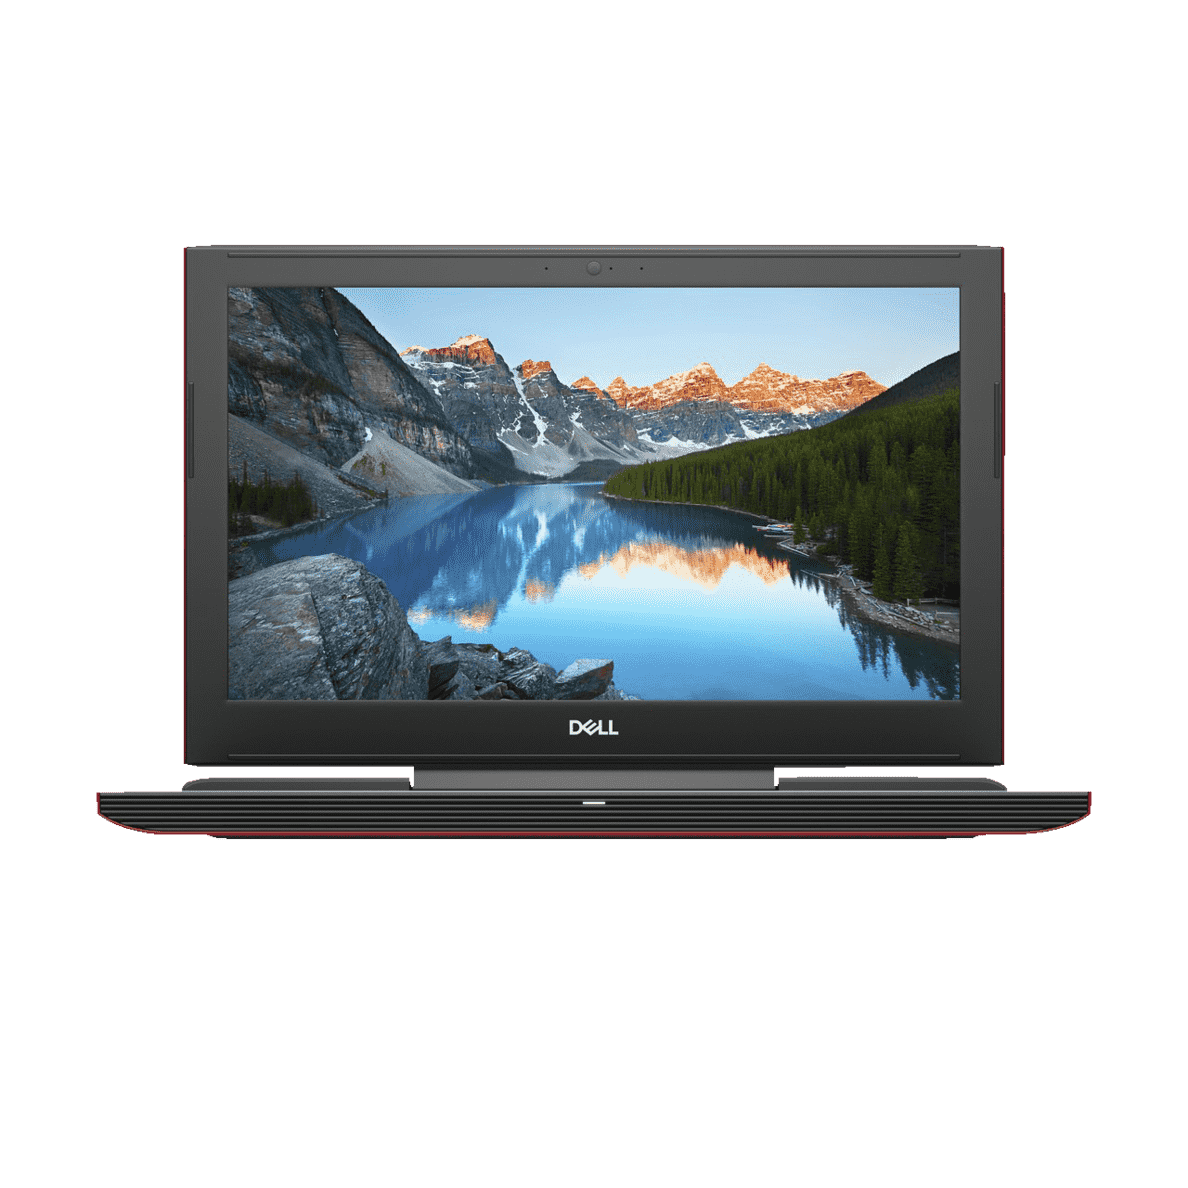 DELL INSPIRON 15 7577, Notebook, Core™ i7 Prozessor, 16 GB RAM, 256 GB SSD, 1 TB HDD, GeForce GTX 1060, Schwarz/Rot | 05397184051344